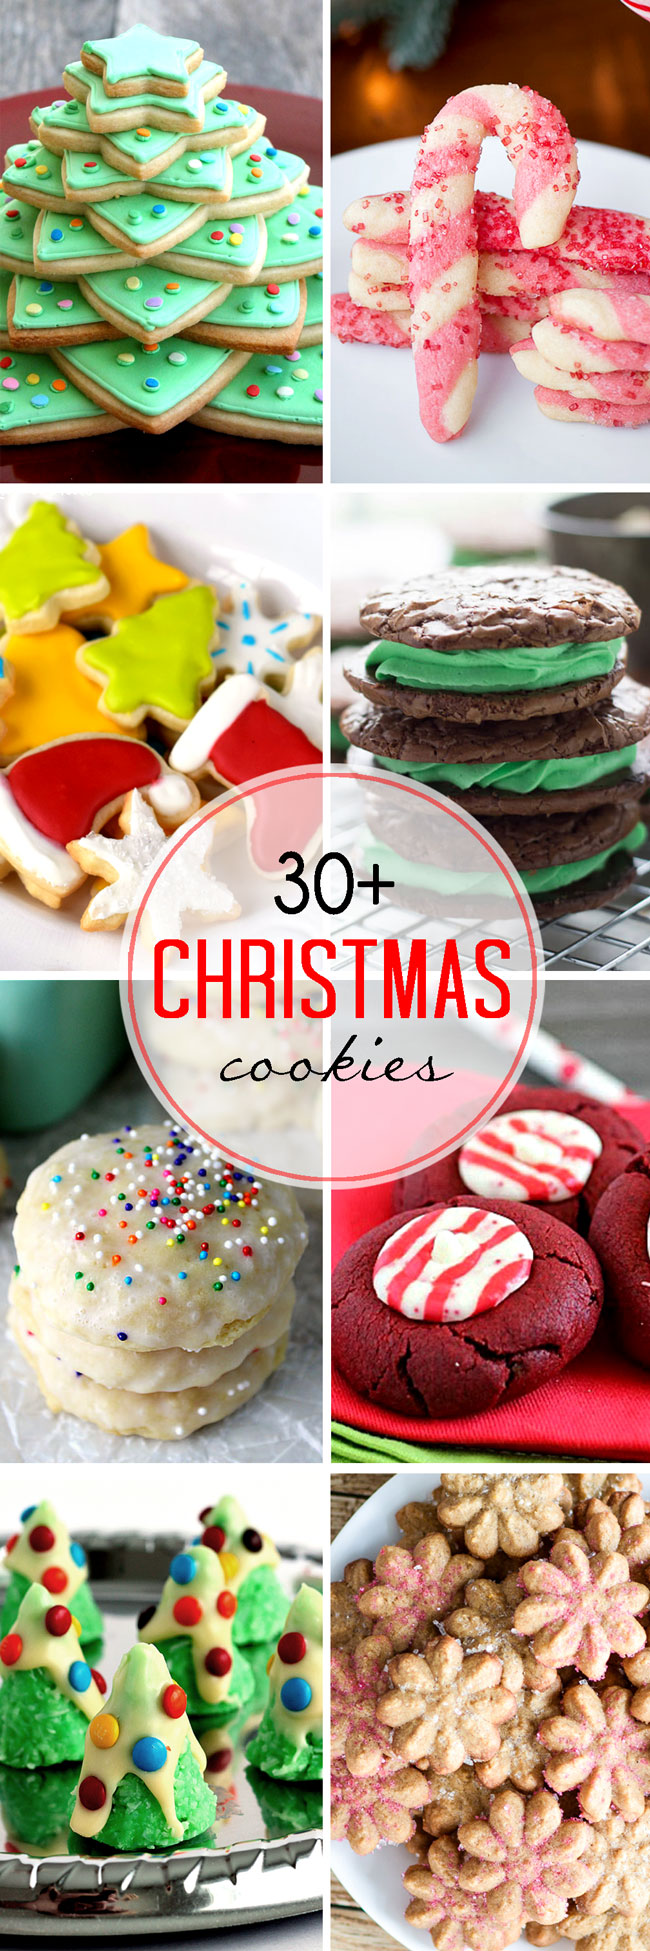 A huge collection of amazing Christmas cookies. These are perfect for celebrating the holidays.